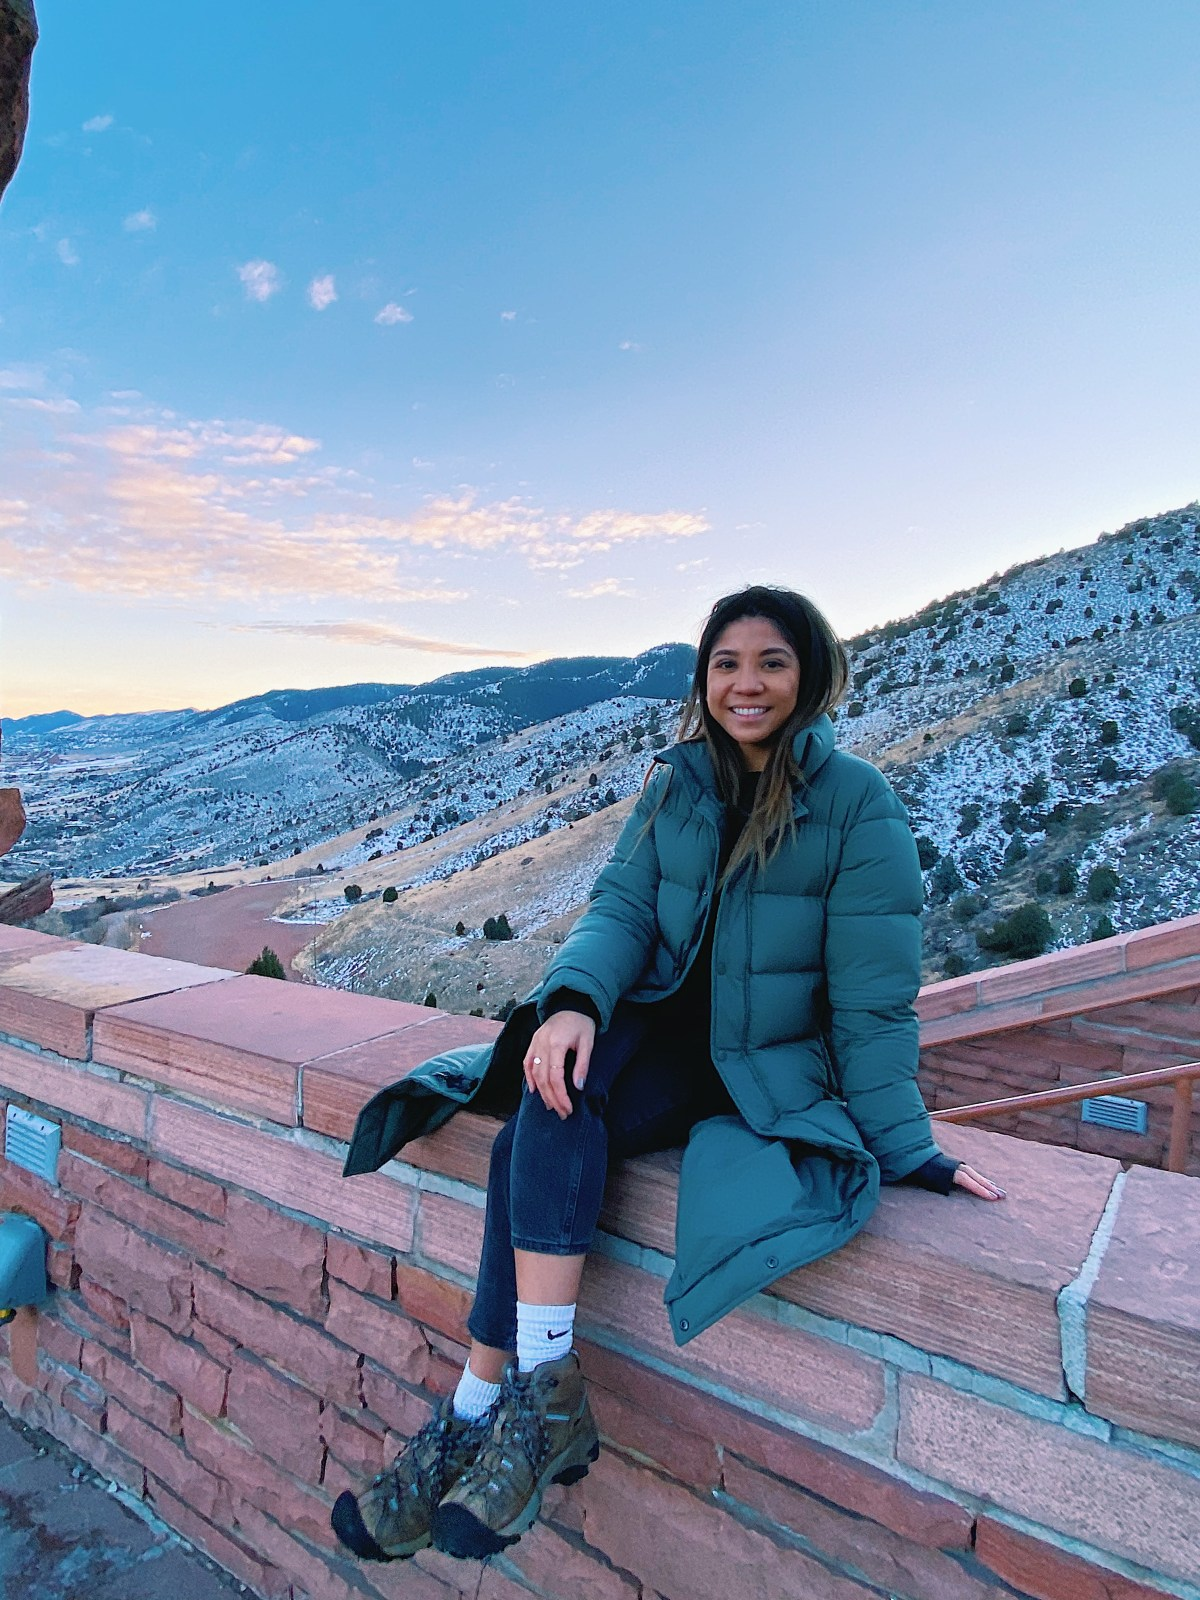 plan to watch the sunset at Red Rocks Amphitheater before your start your Colorado ski trip